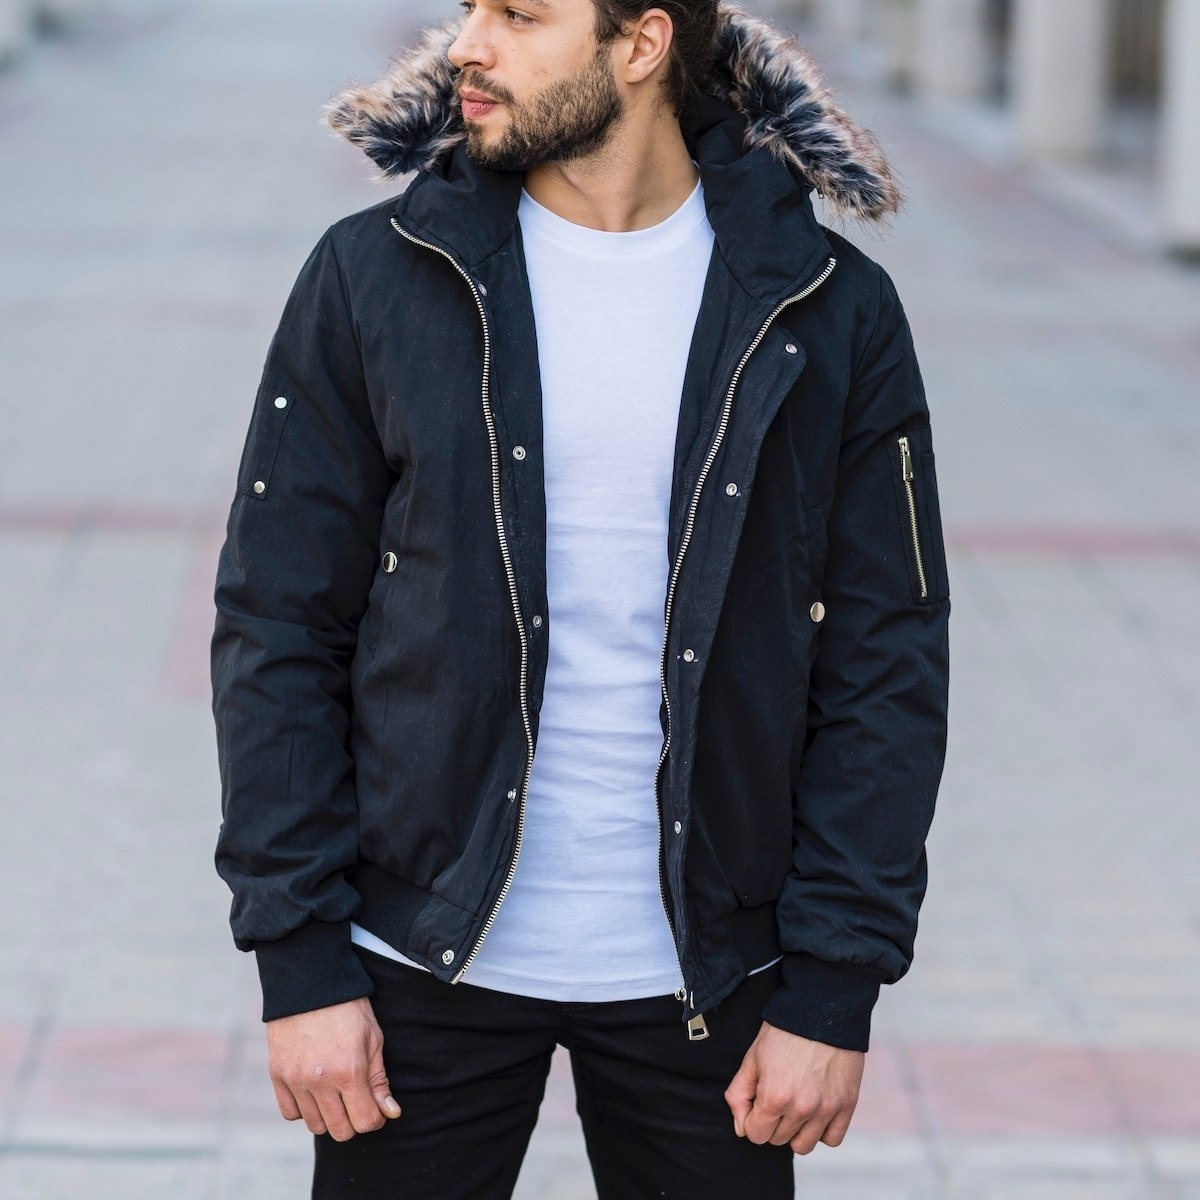 Men's Hooded Furry Jacket...